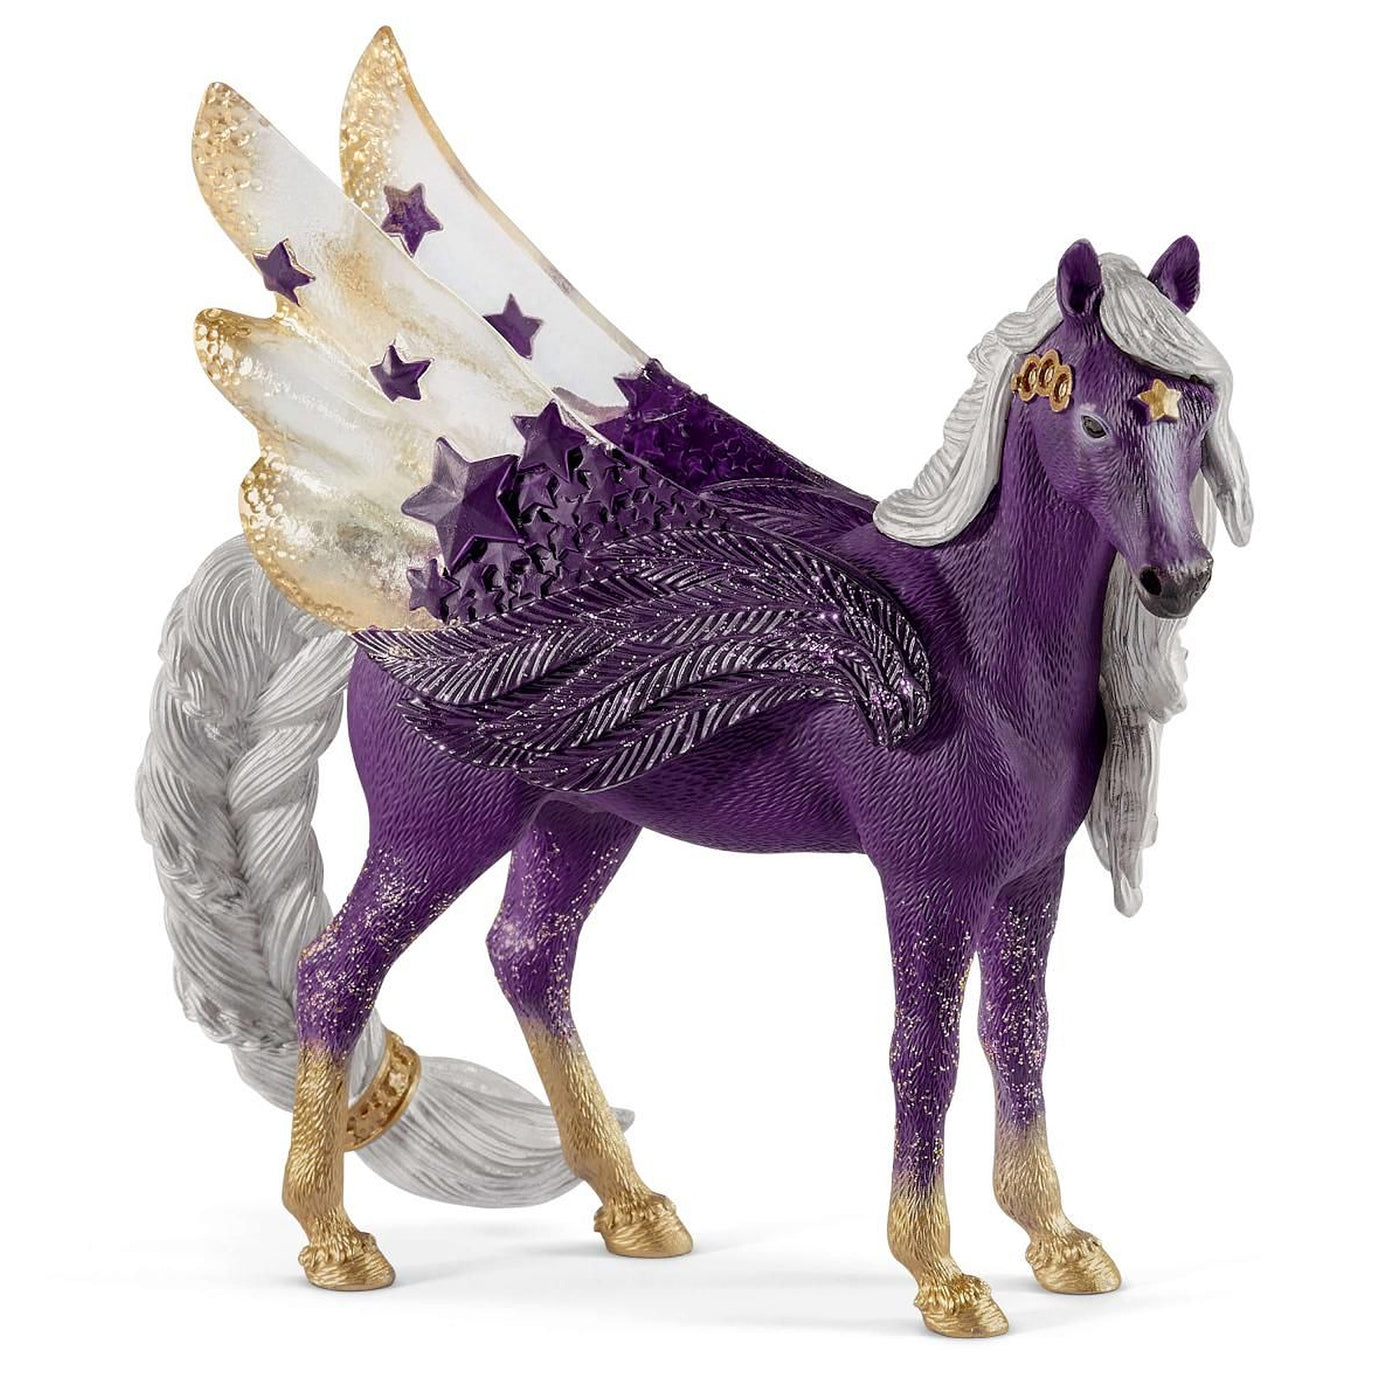 Schleich bayala Star Pegasus Mare (Purple) Toy Figurine